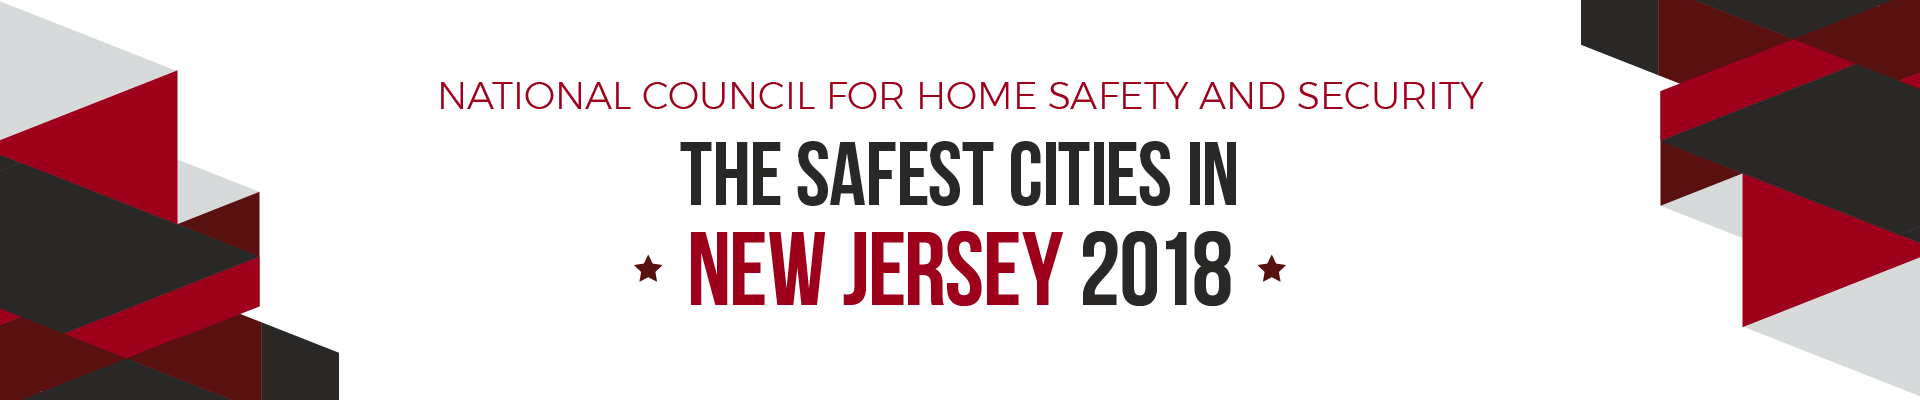 safe cities new jersey 2018